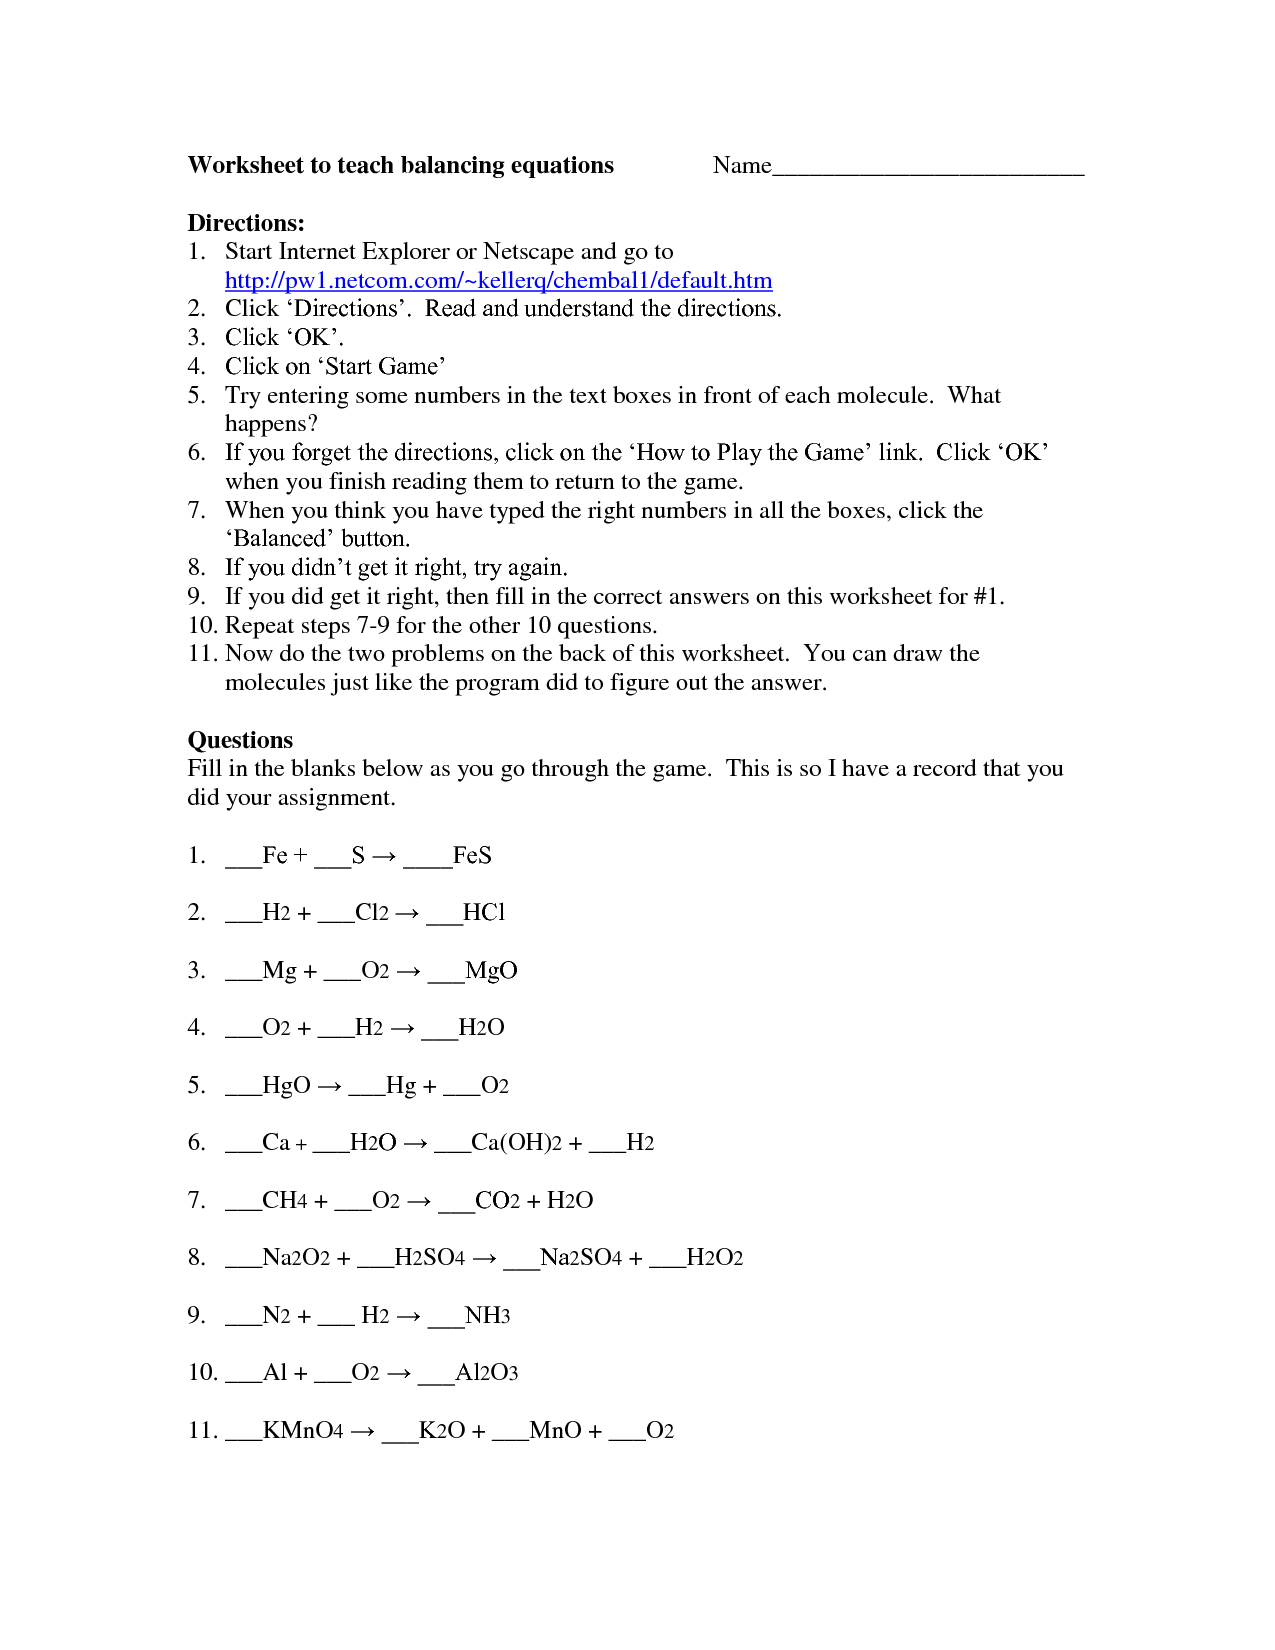 Balancing Equations 8th Grade Worksheet